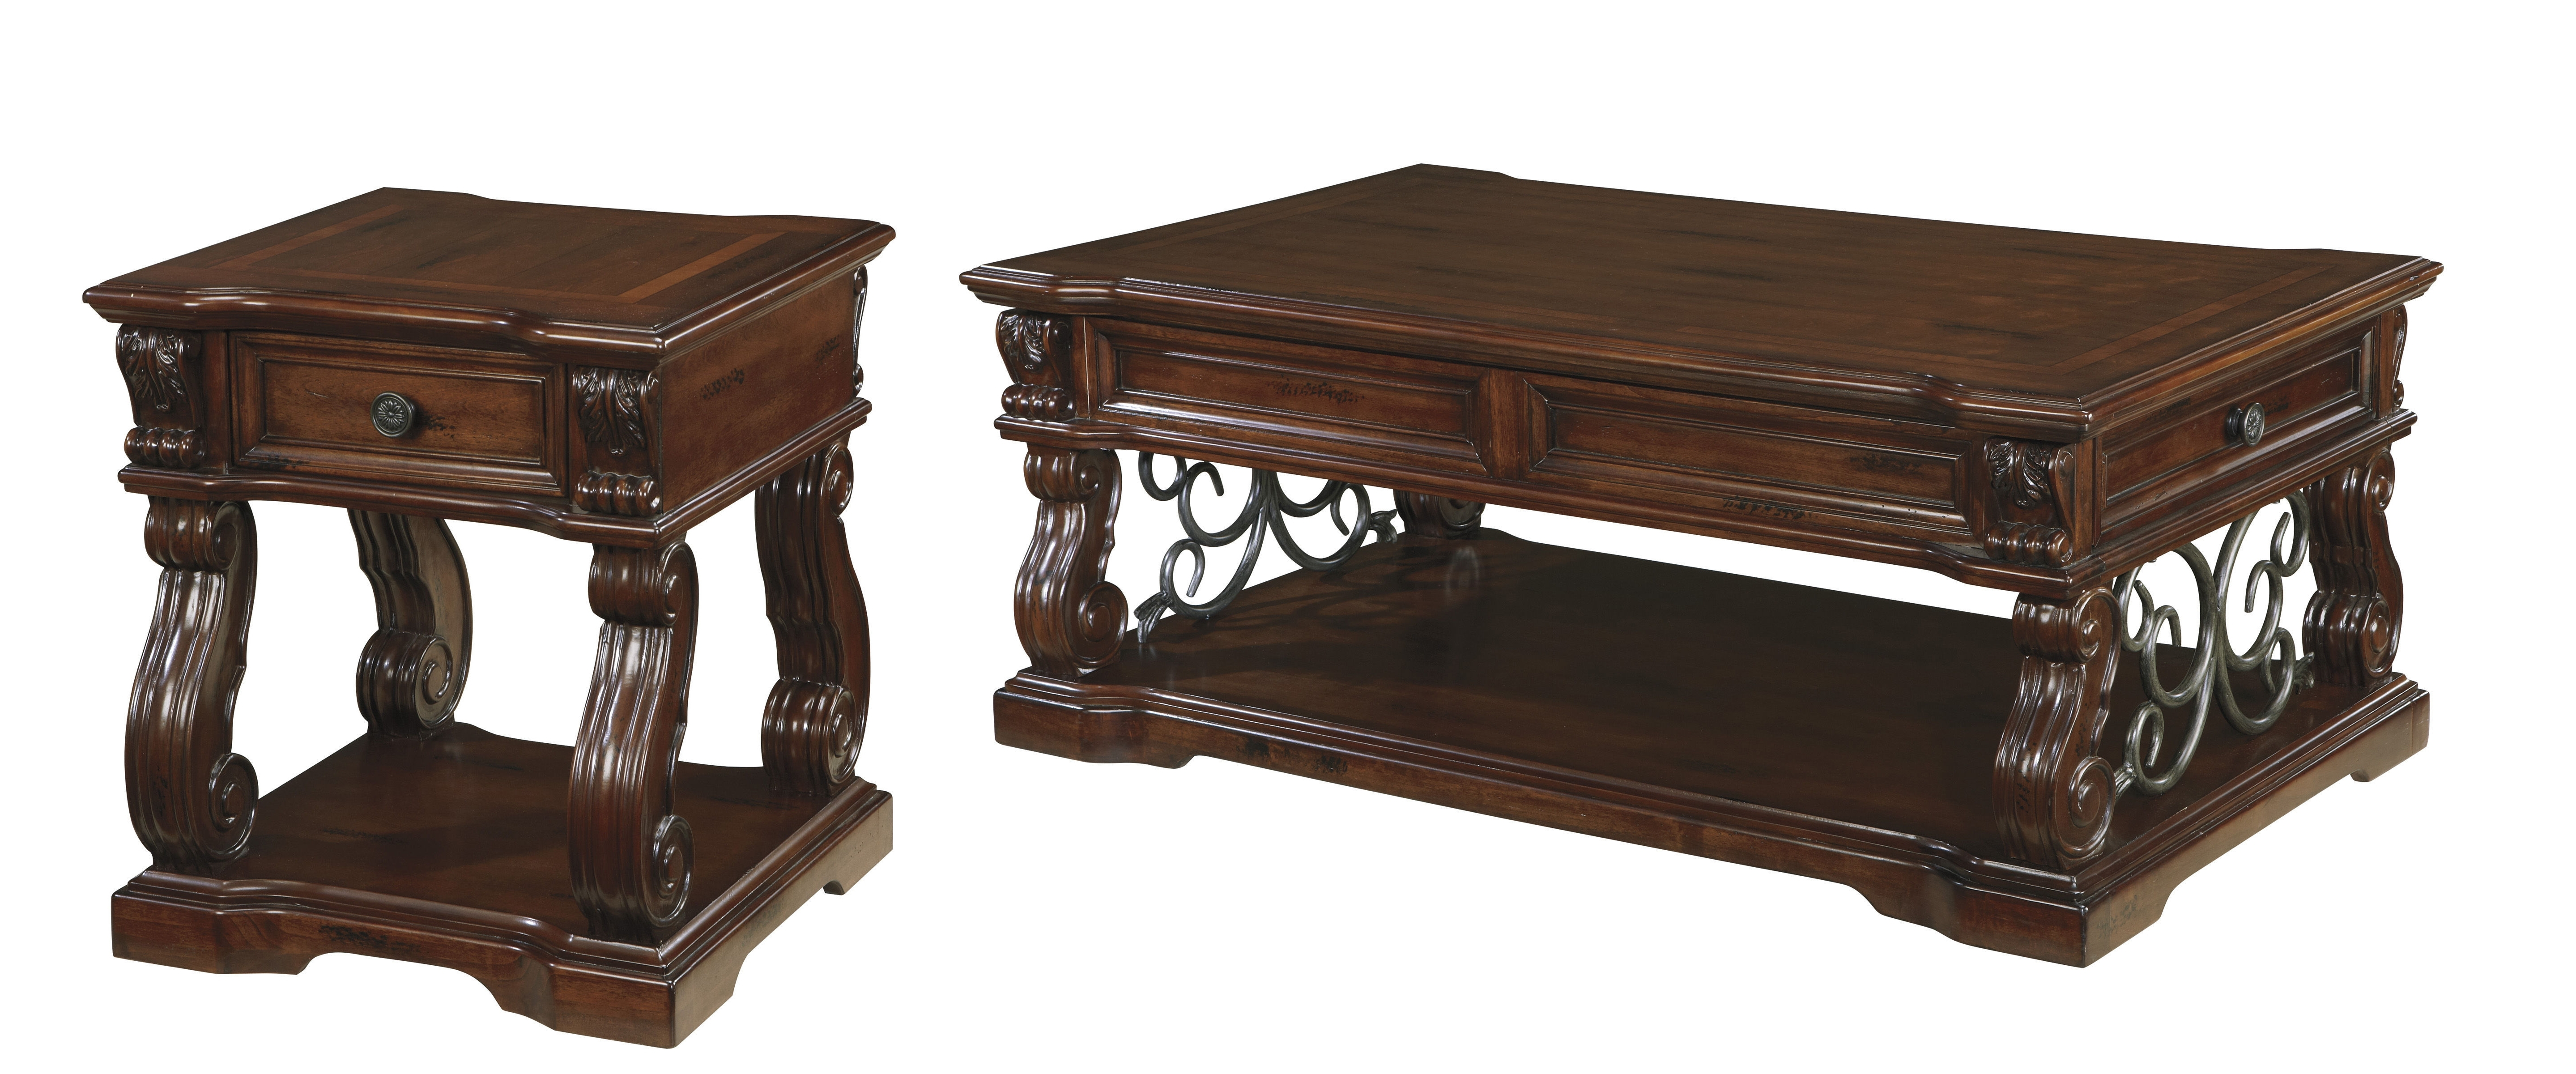 Ashley Furniture Alymere 3Pc Coffee Table Set (Gallery 5 of 20)